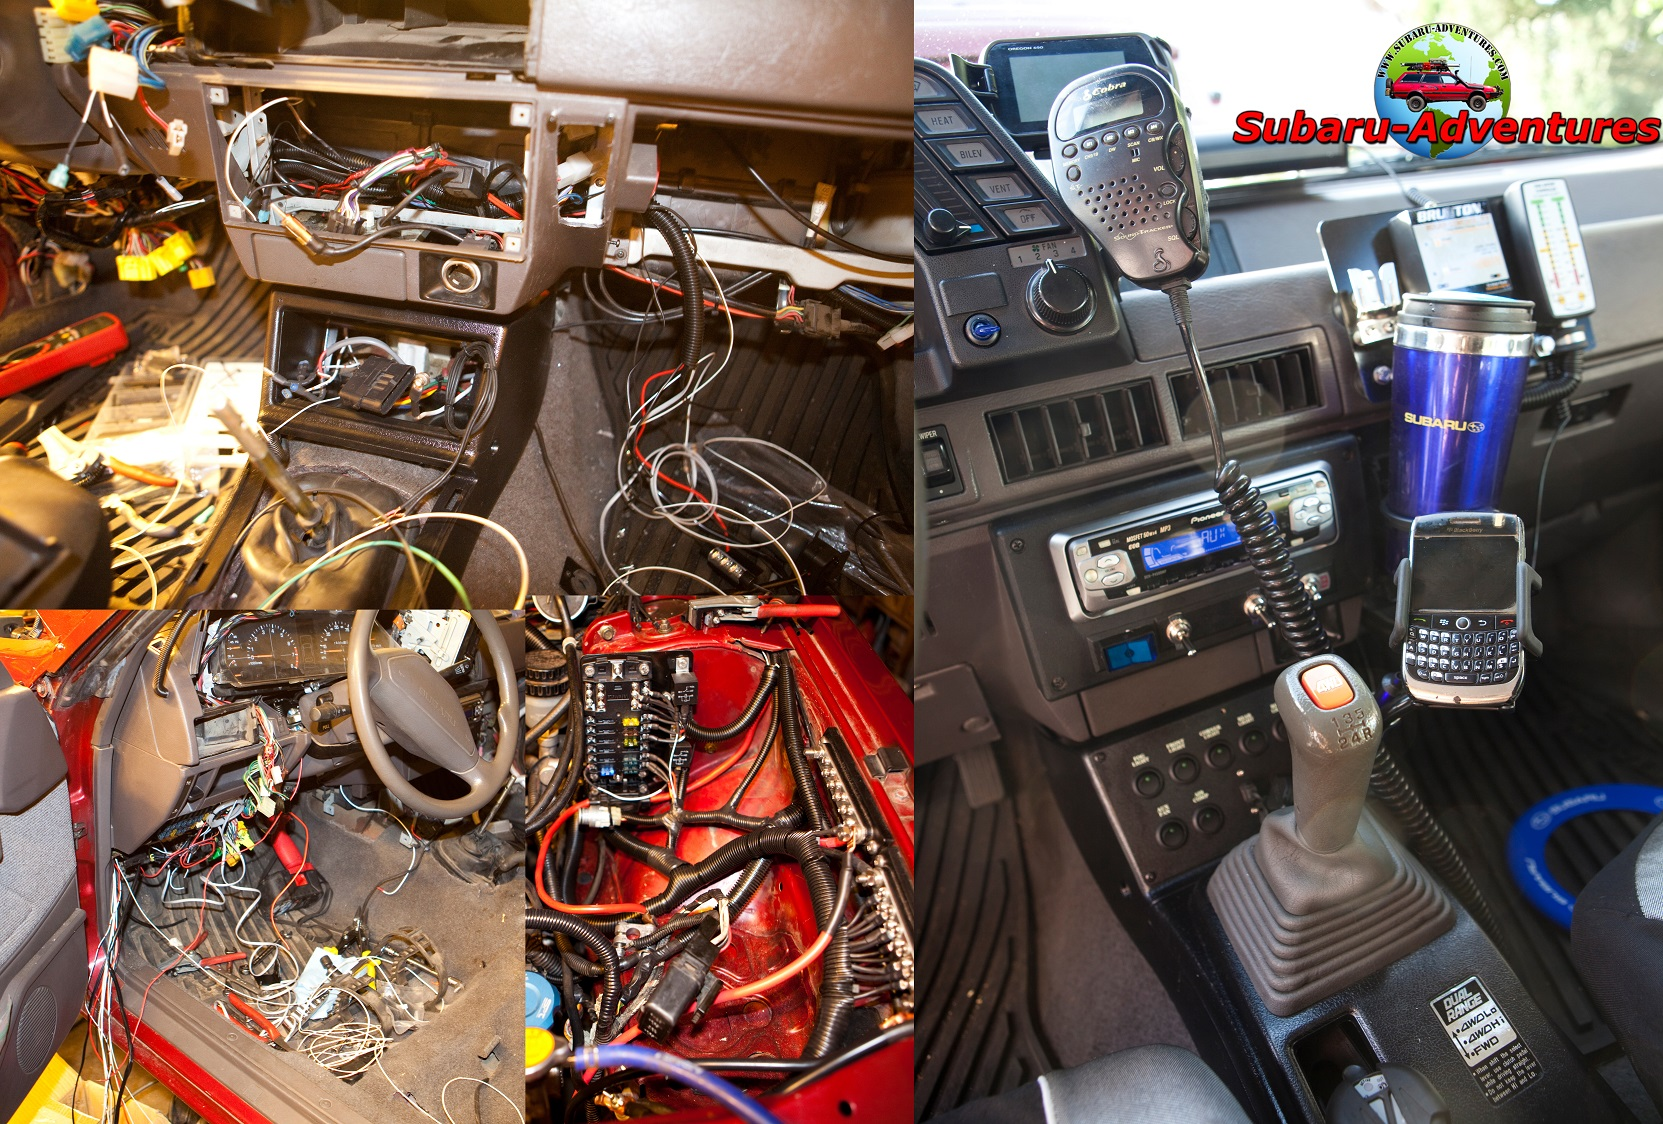 1992 subaru loyale wiring and completion in 2013 trailer rh subaru adventures com 1991 subaru loyale radio wiring diagram subaru loyale radio wiring diagram